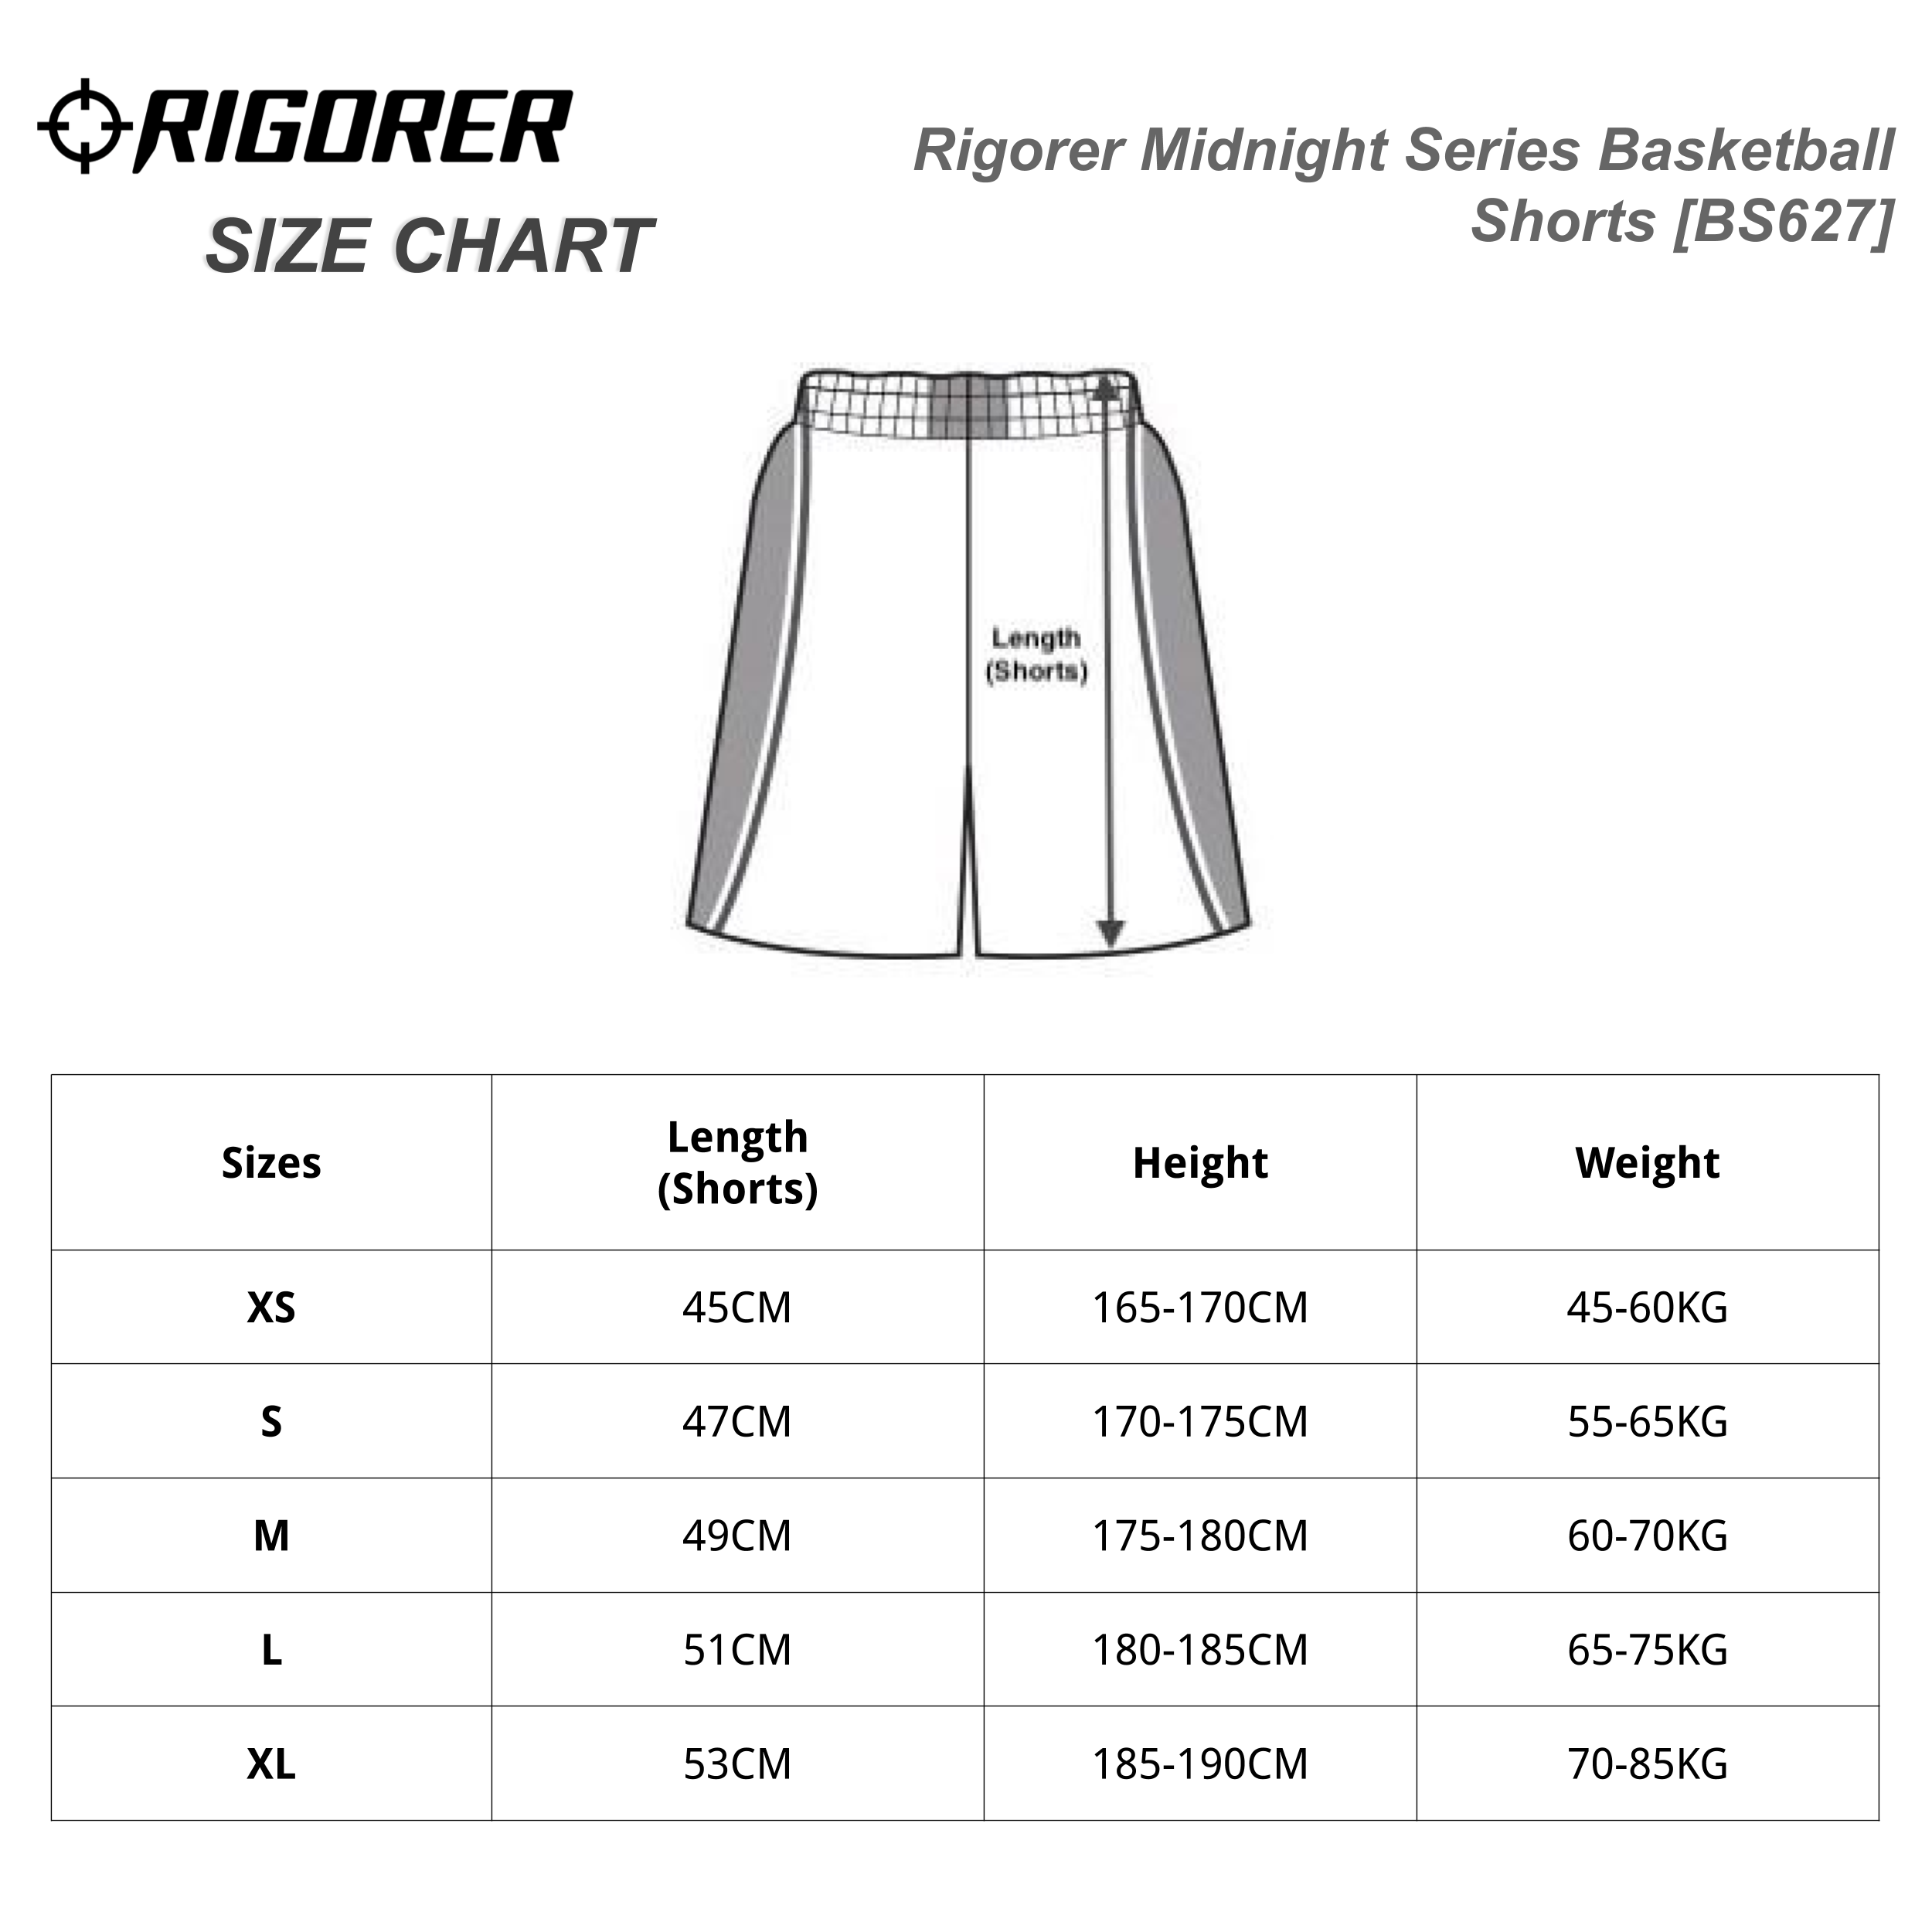 Rigorer Midnight Series Basketball Shorts [BS627] Sizing Chart